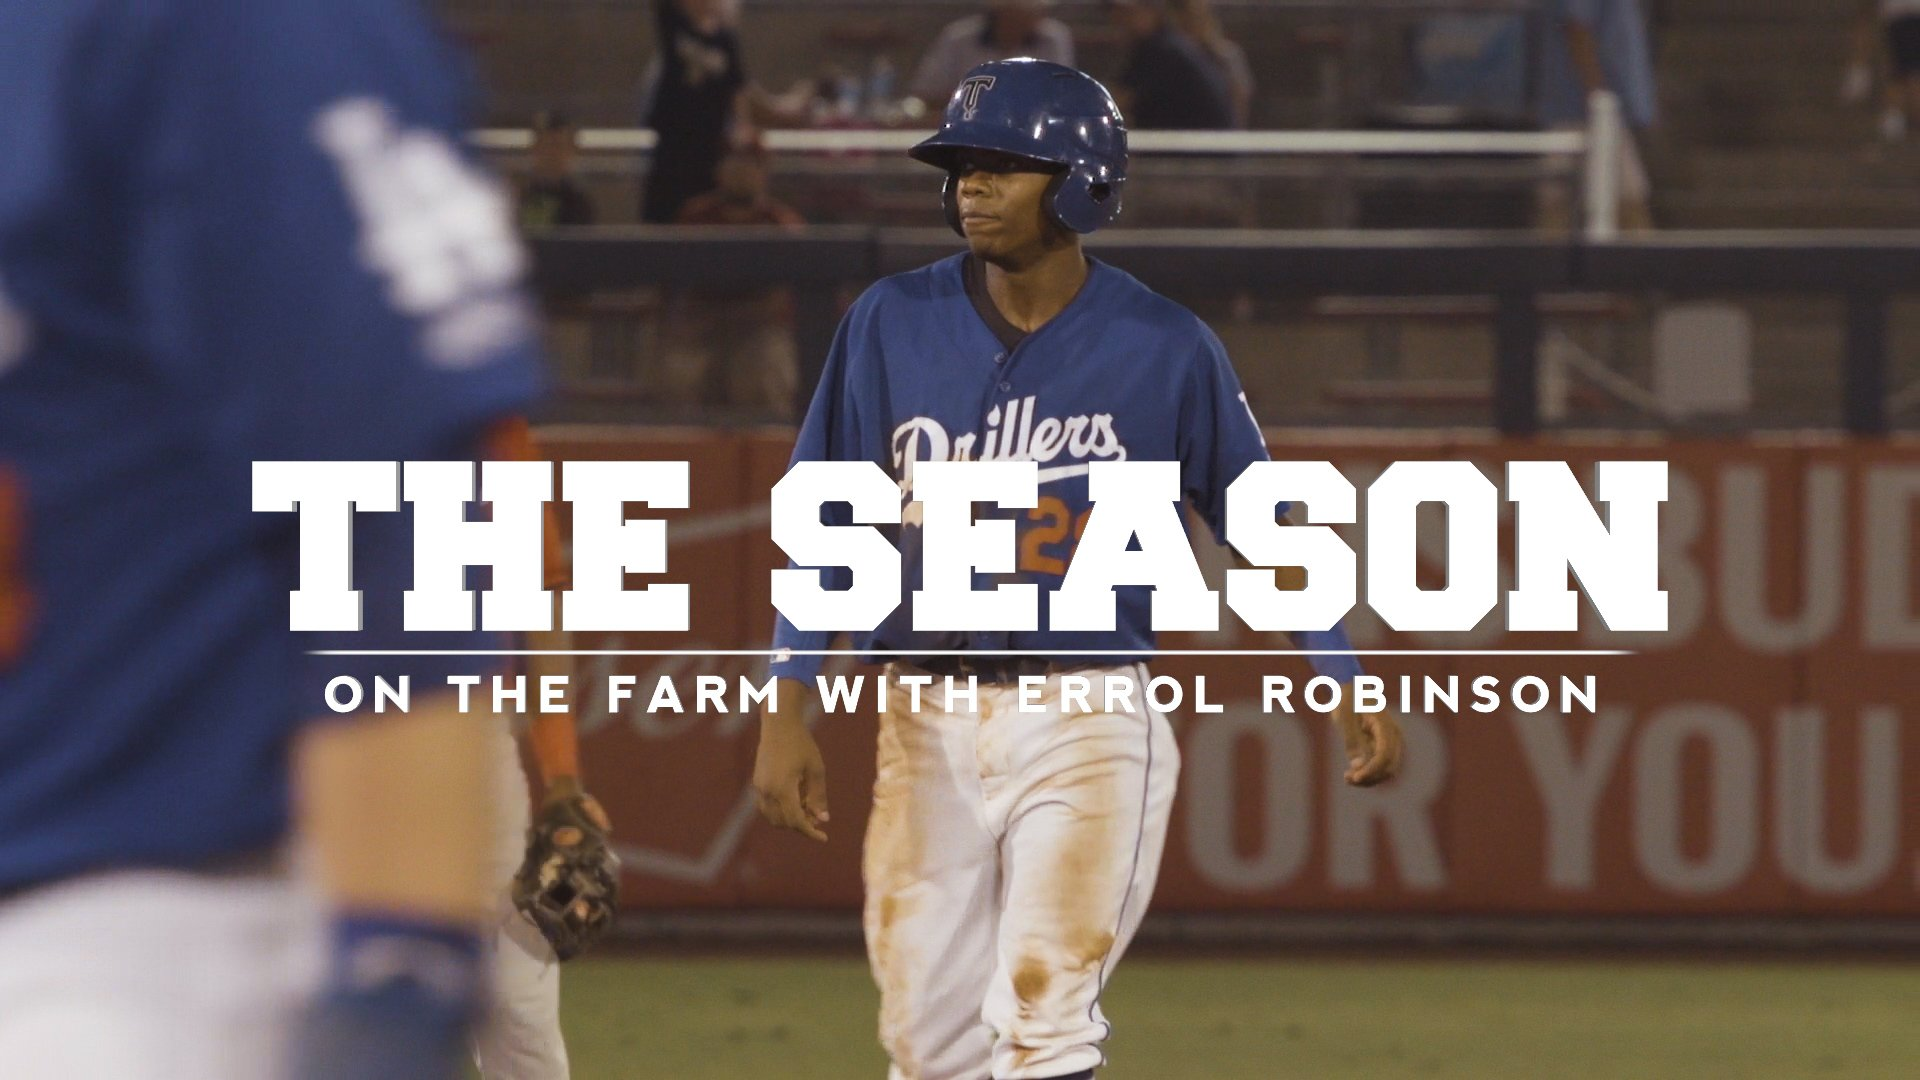 The Season: On the Farm with Errol Robinson